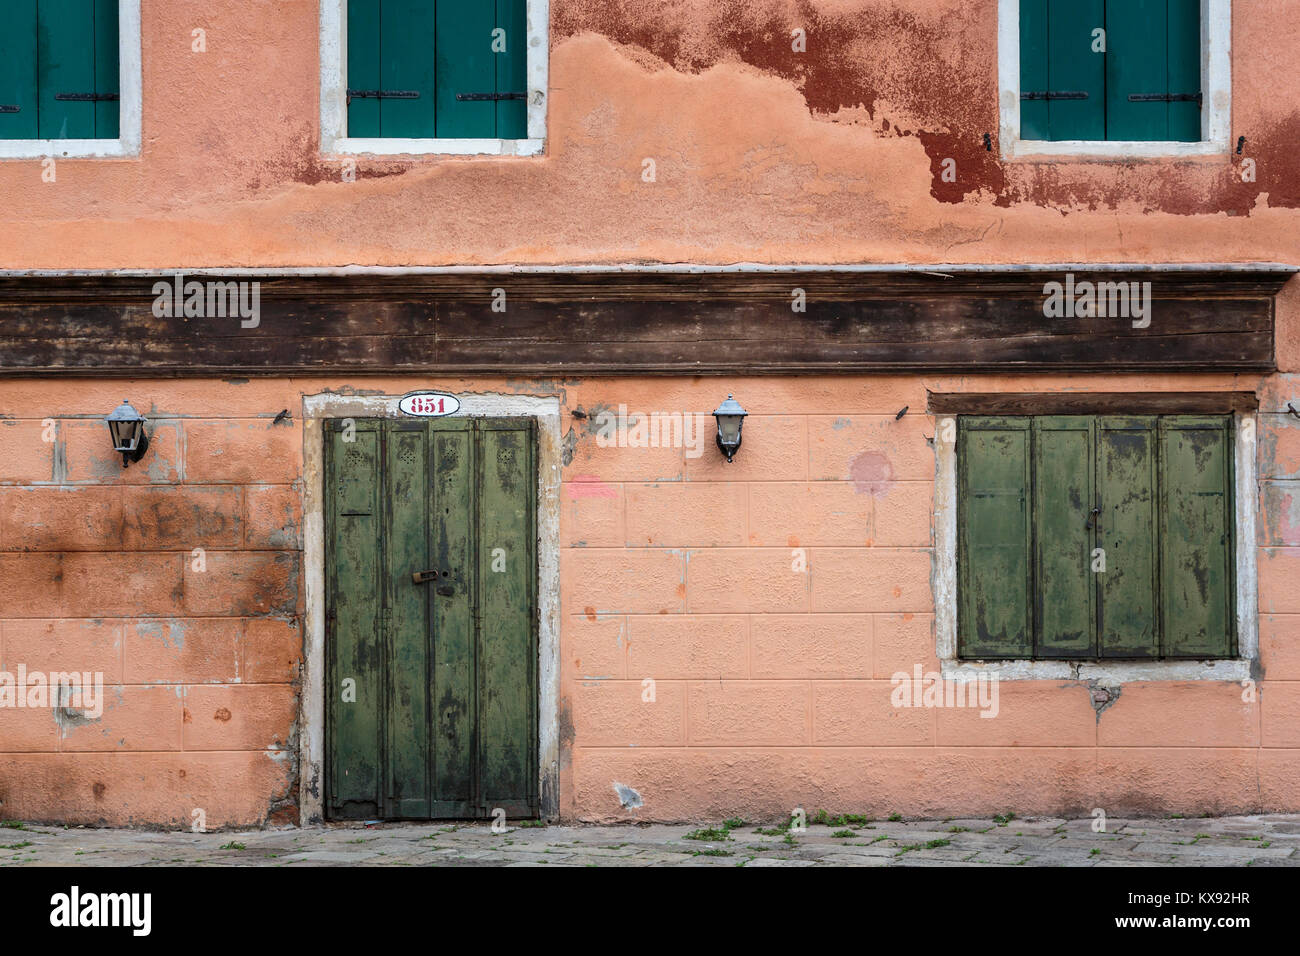 Building door and shuttered windows along a small canal in Veneto, Venice, Italy, Europe. - Stock Image